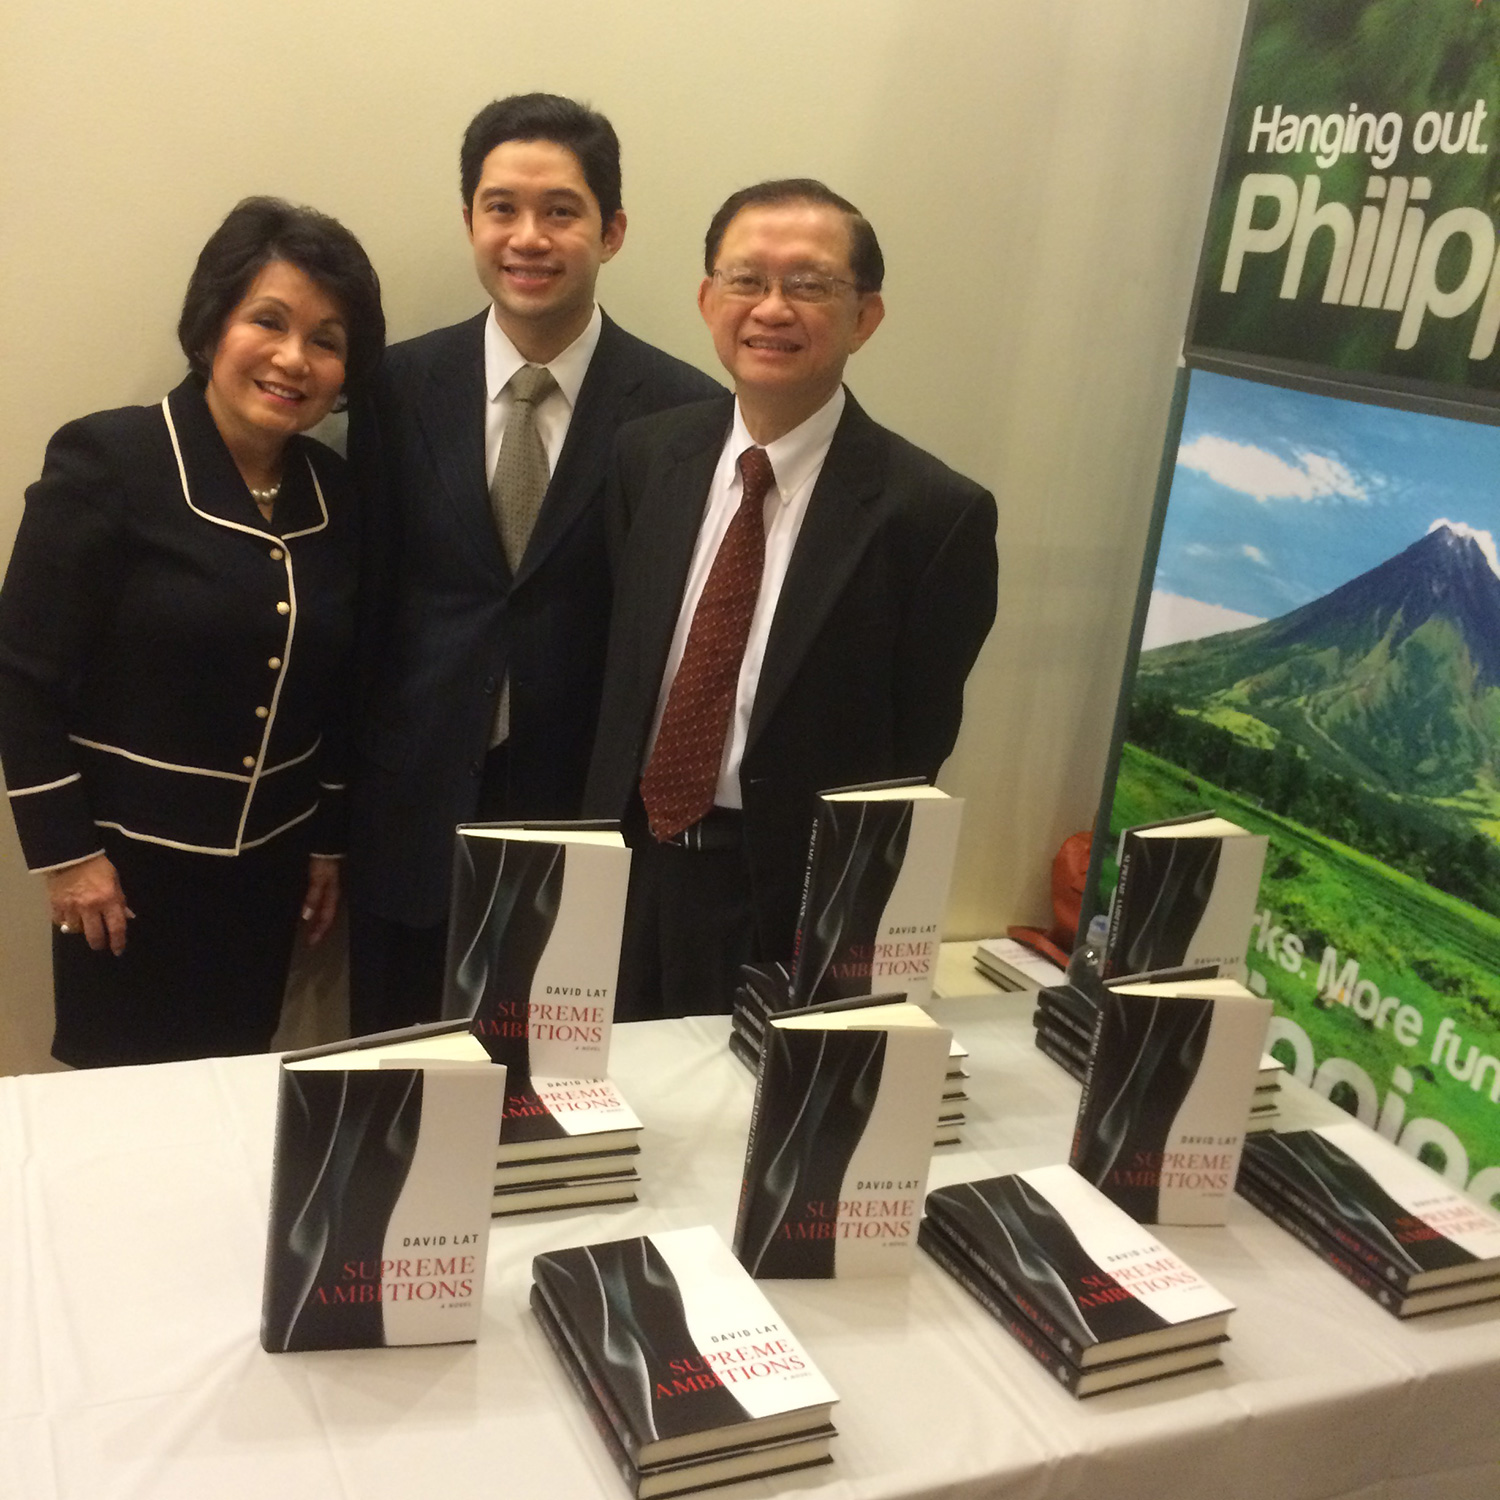 David with parents Dr. Zenda Garcia Lat and Dr. Emmanuel Lat at the  Supreme Ambitions  book launch at the Philippine Center in New York. (Photo courtesy of David Lat)